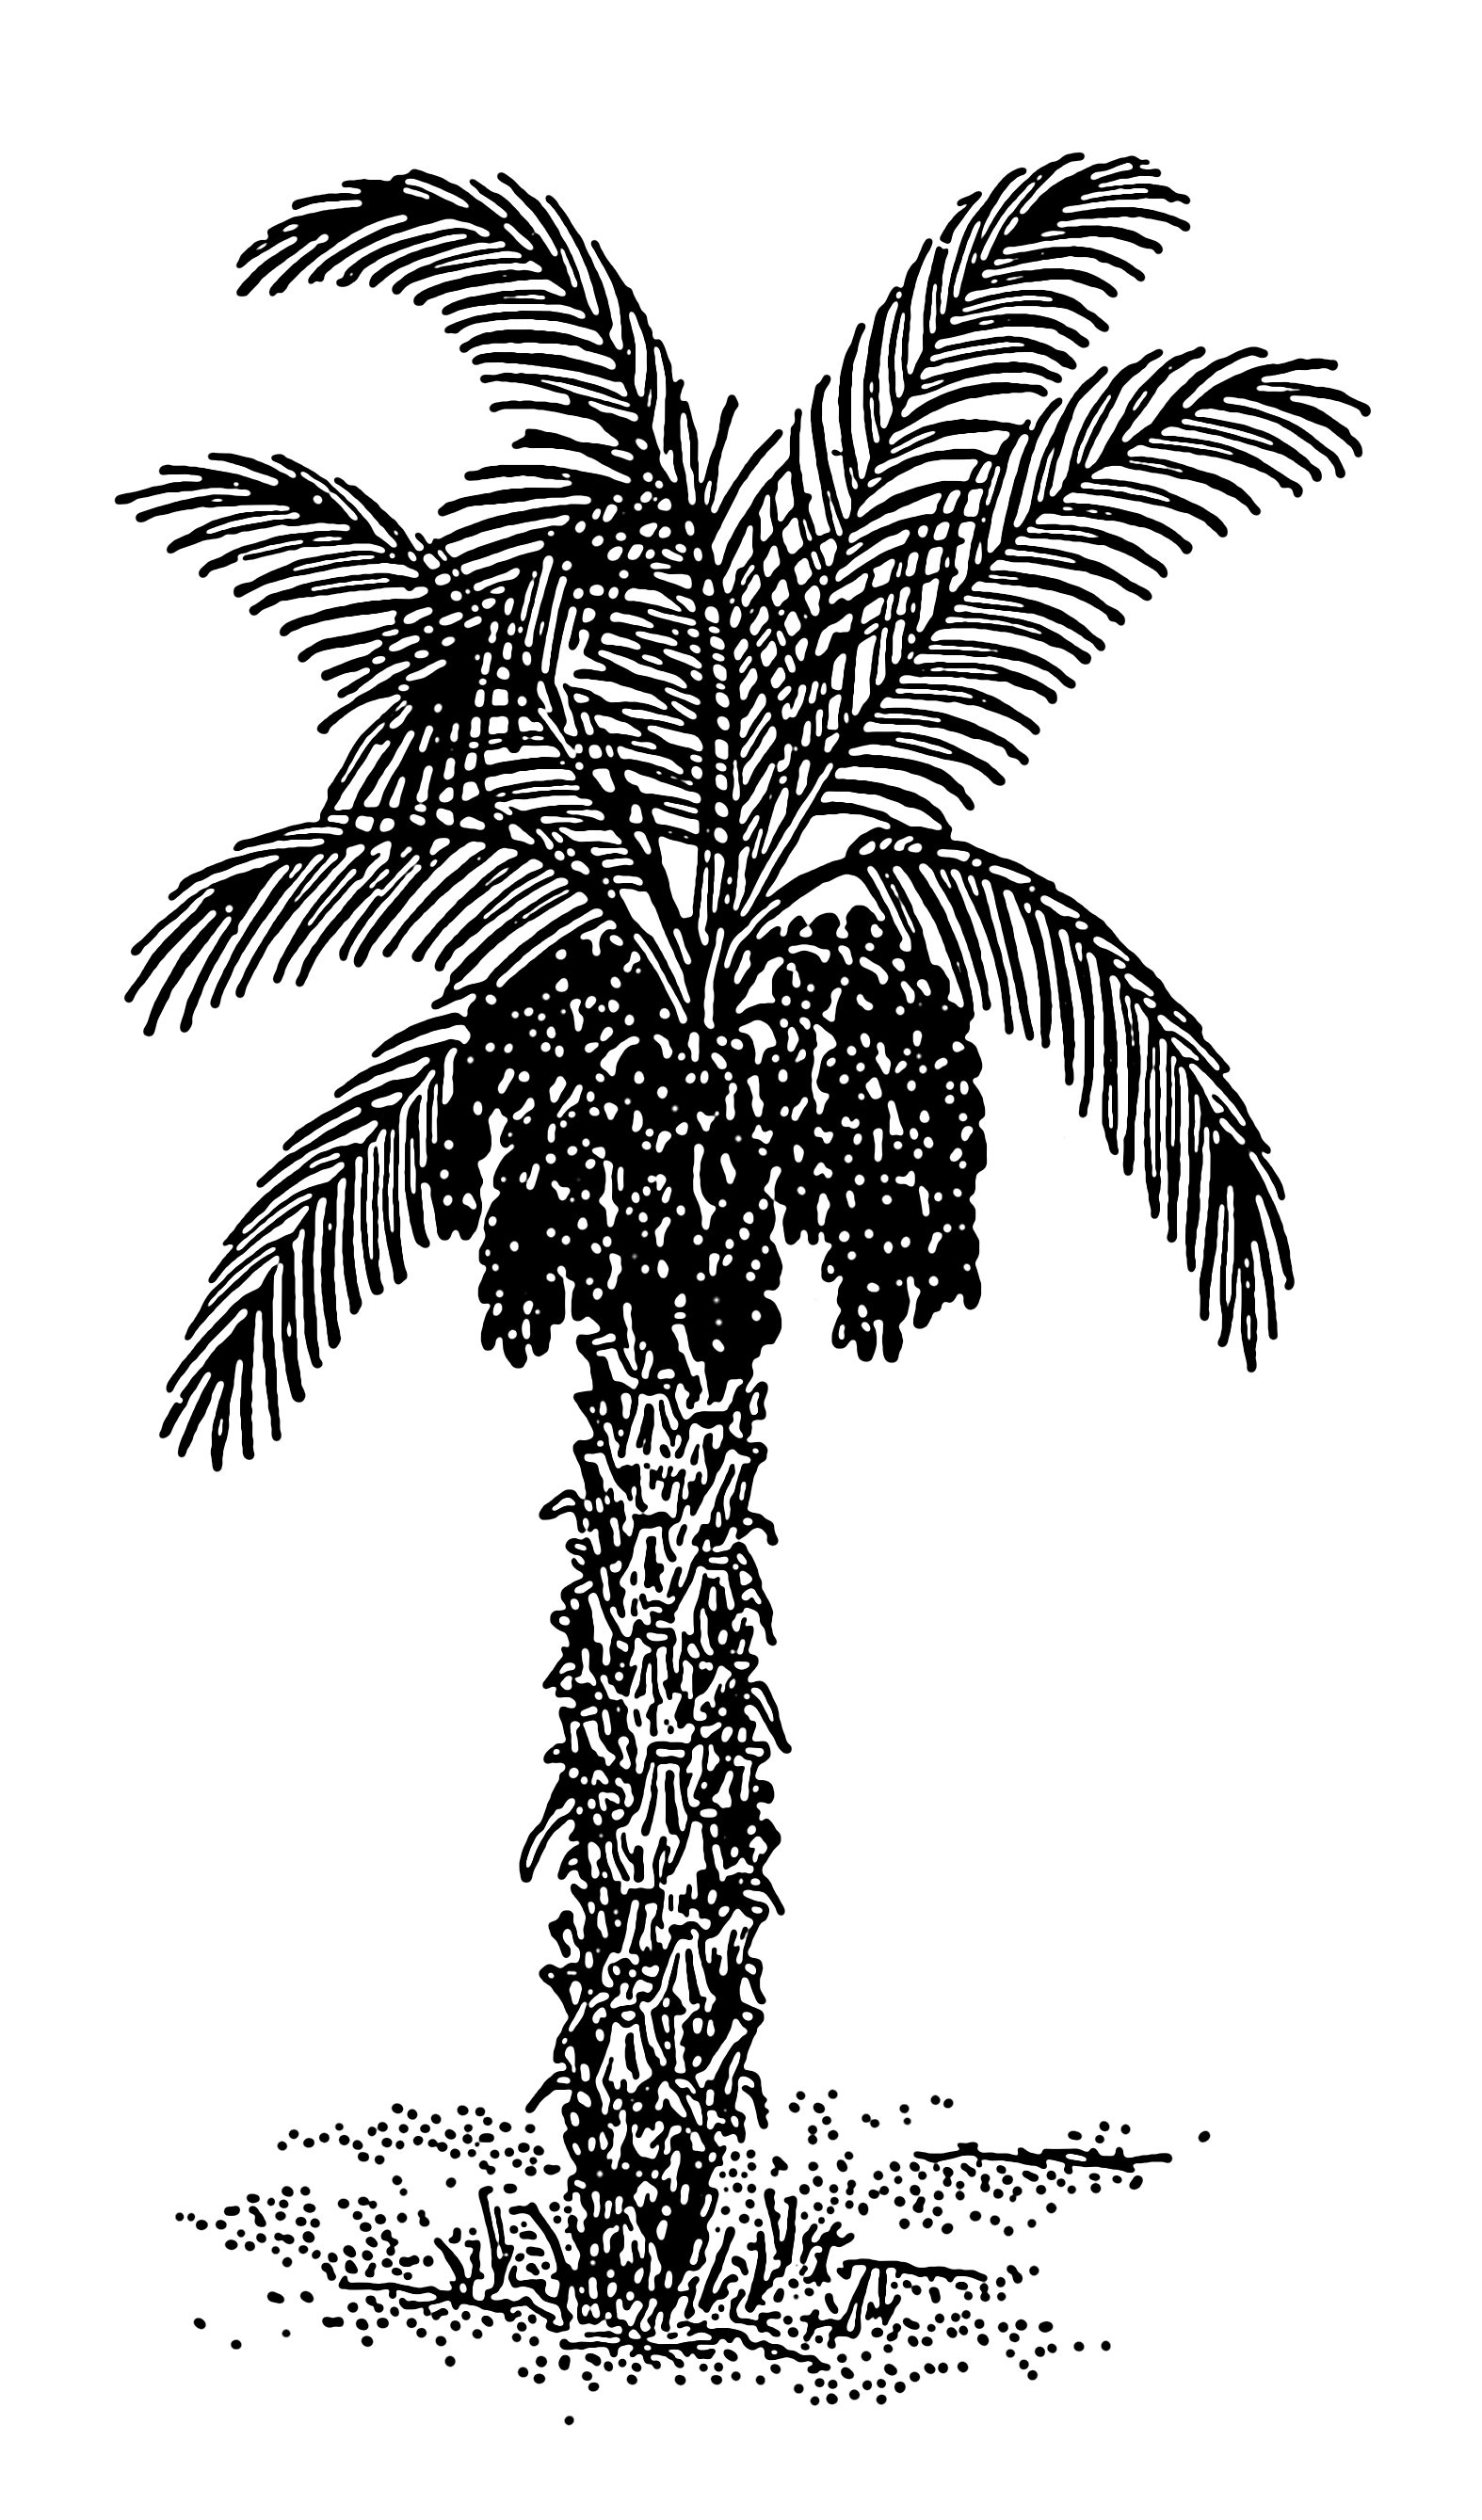 File:Date Palm 001.png.